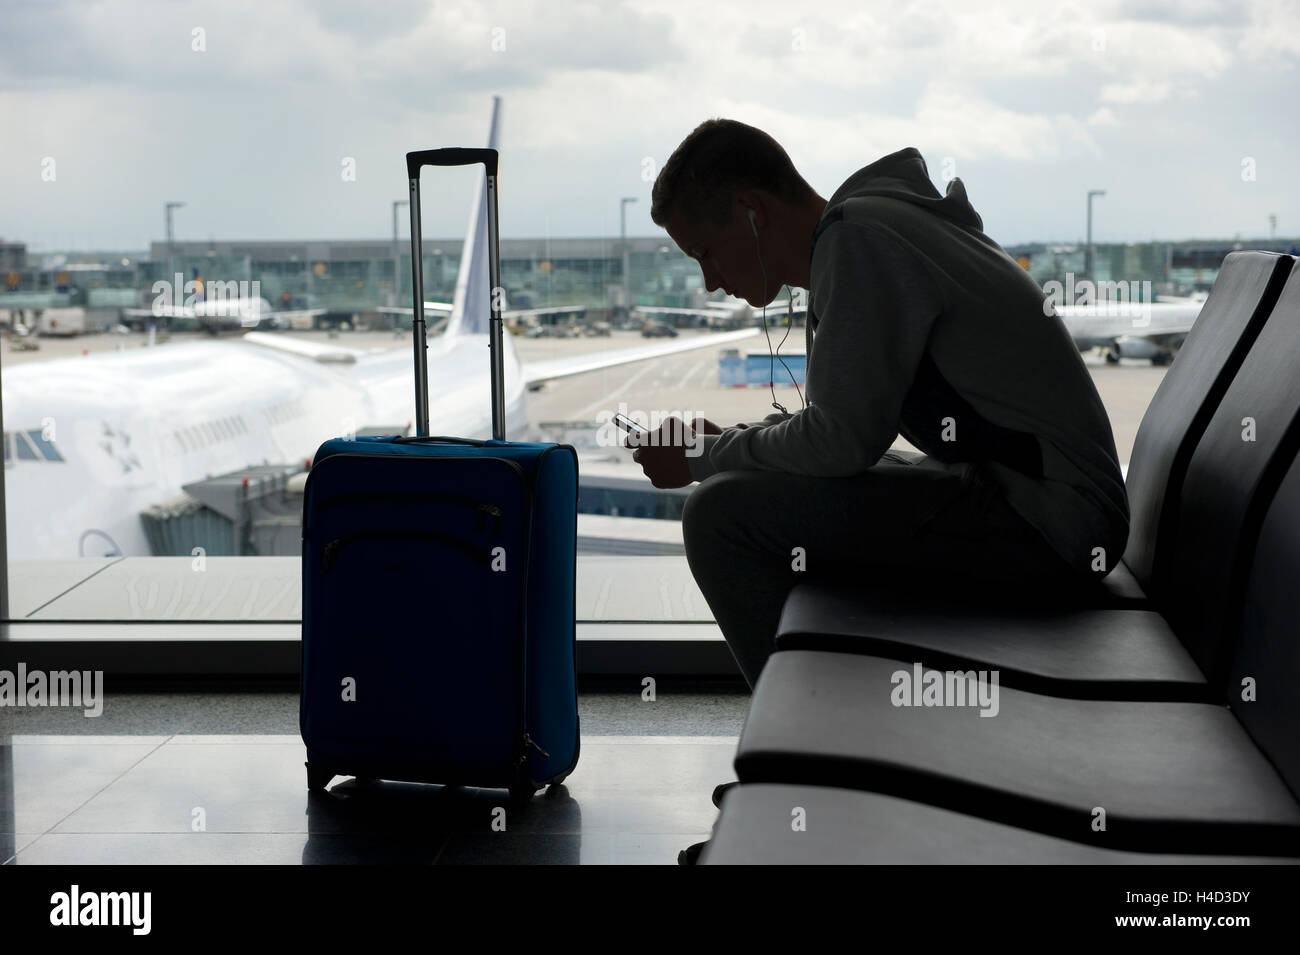 A teenager is waiting on an airport and playing with his smartphone - Stock Image